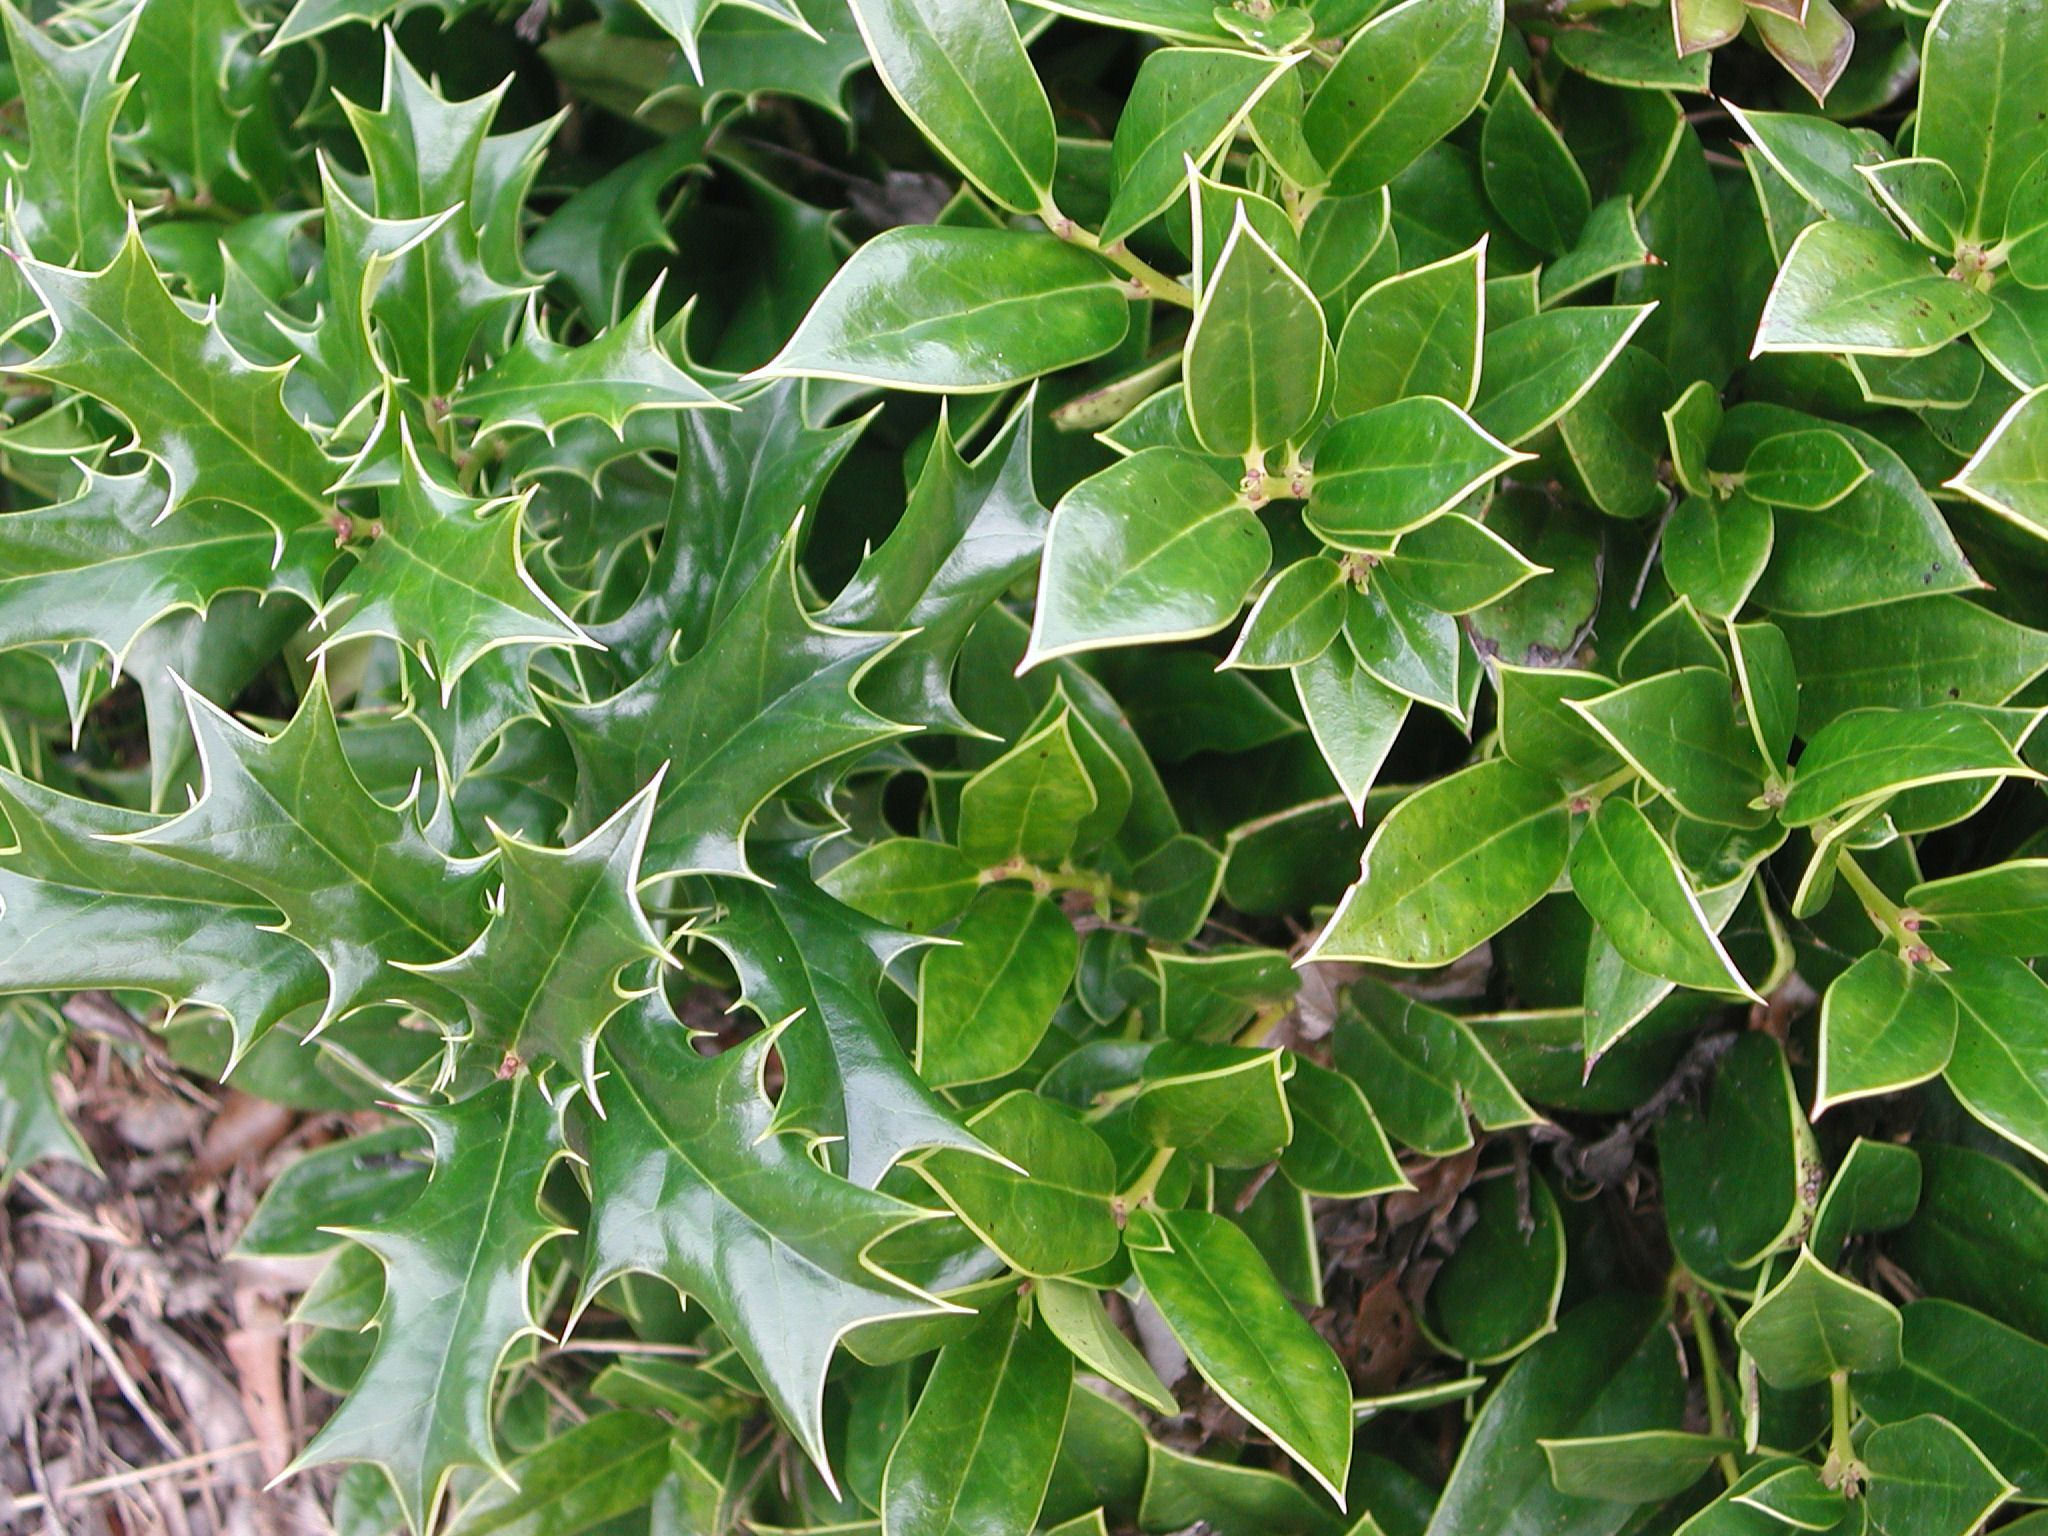 black singles in hollytree Some shrubs - like holly - require separate male and female plants in order for pollination to occur for berry production but how does one go about identifying male and female holly bushes click here to find out.